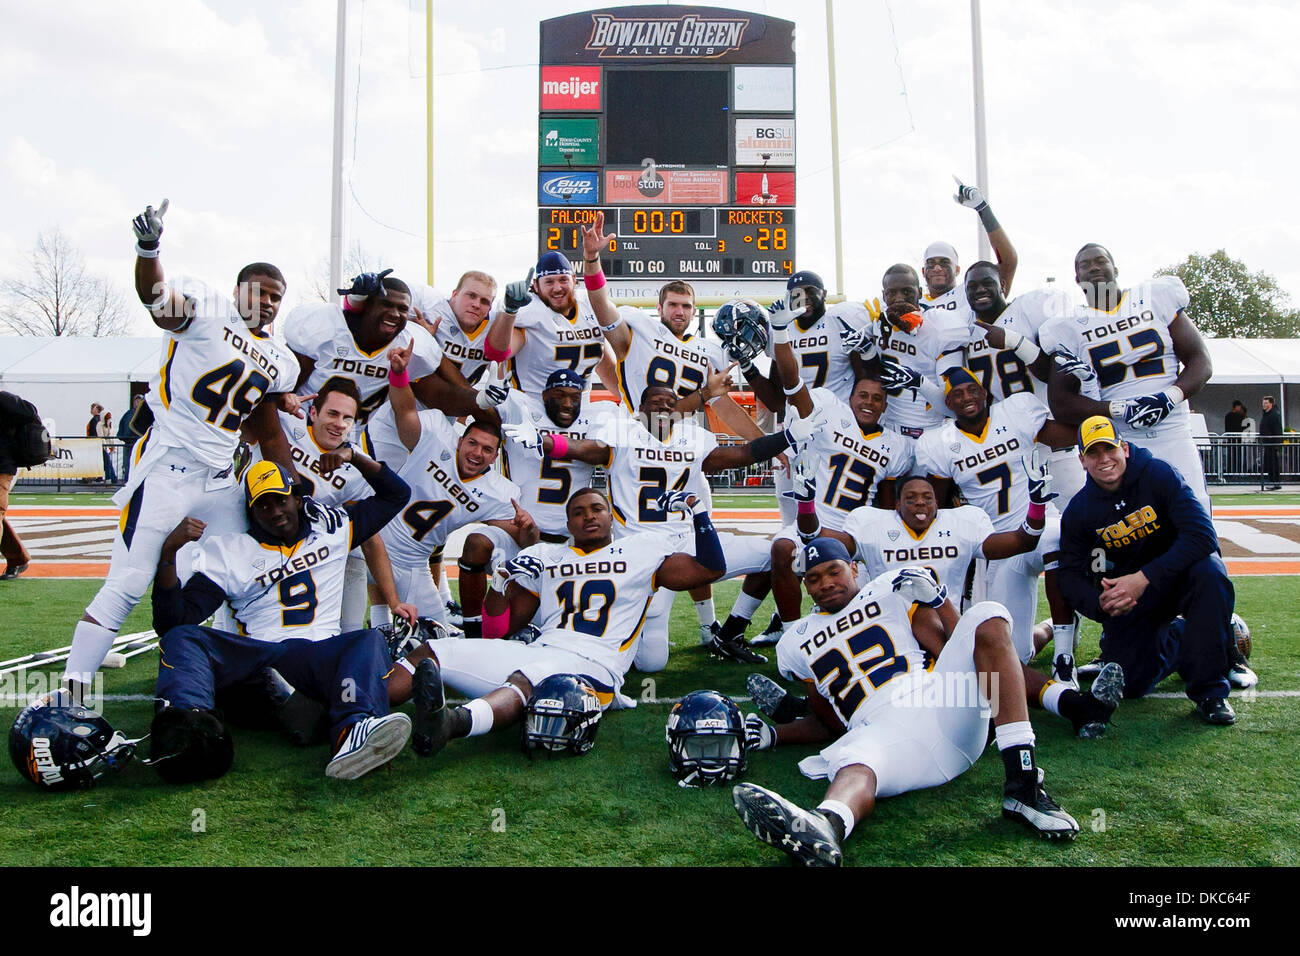 Oct. 15, 2011 - Bowling Green, Ohio, U.S - Toledo players pose for a photograph in front of the scoreboard at the conclusion of the game.  The Toledo Rockets, of the Mid-American Conference West Division, defeated the Bowling Green Falcons, of the MAC East Division, 28-21 in the inaugural game for the ''Battle of I-75'' trophy at Doyt Perry Stadium in Bowling Green, Ohio. (Credit I - Stock Image